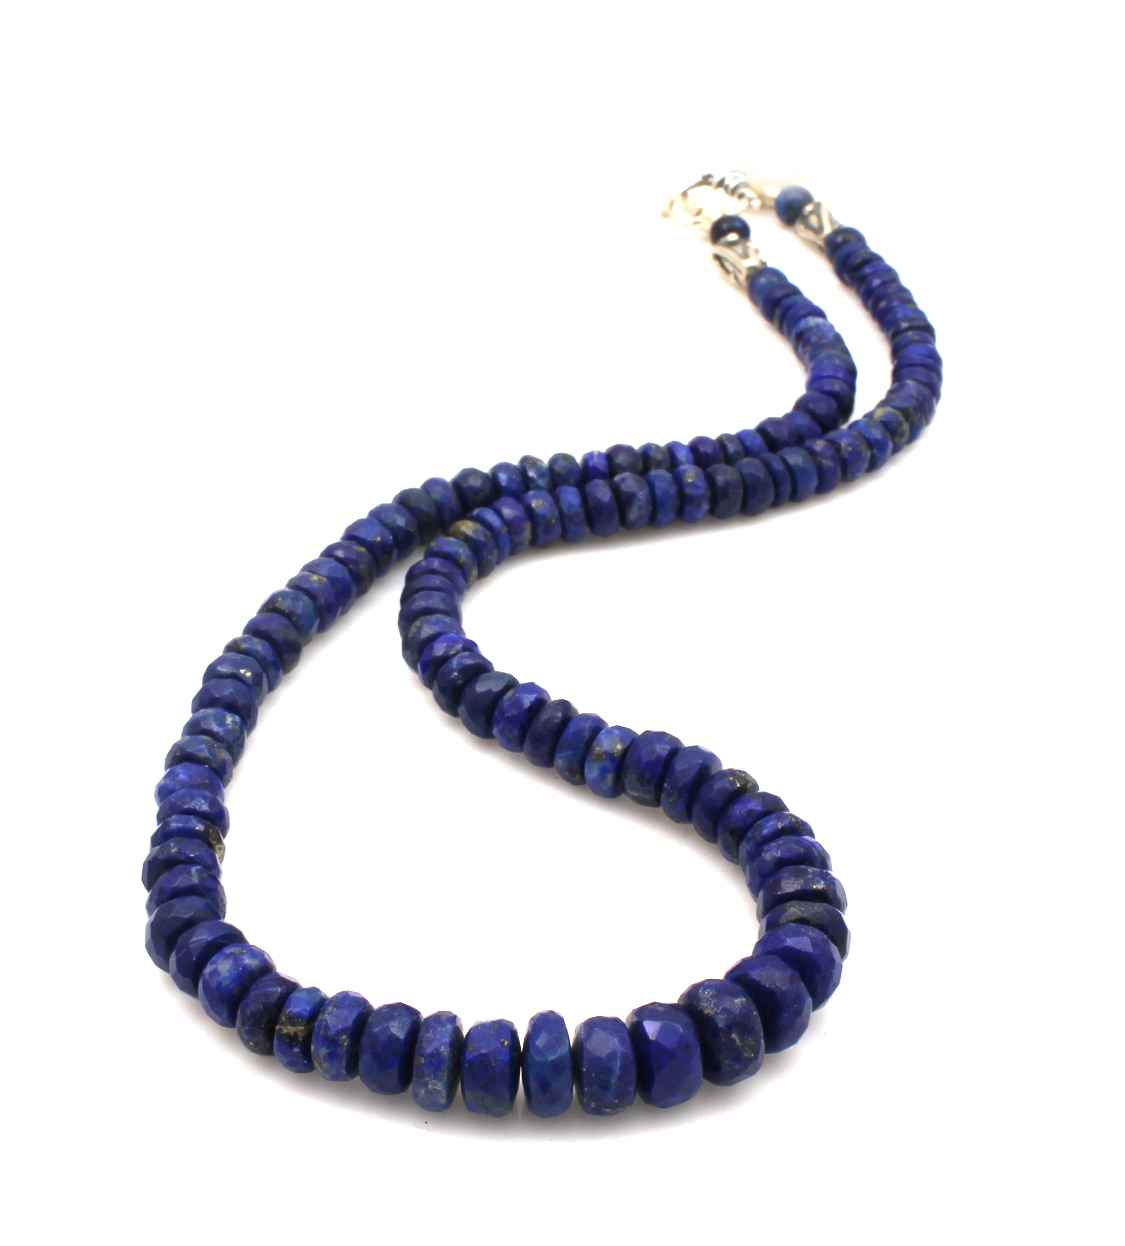 Faceted Lapis Bead Ne... by  Pam Springall - Masterpiece Online